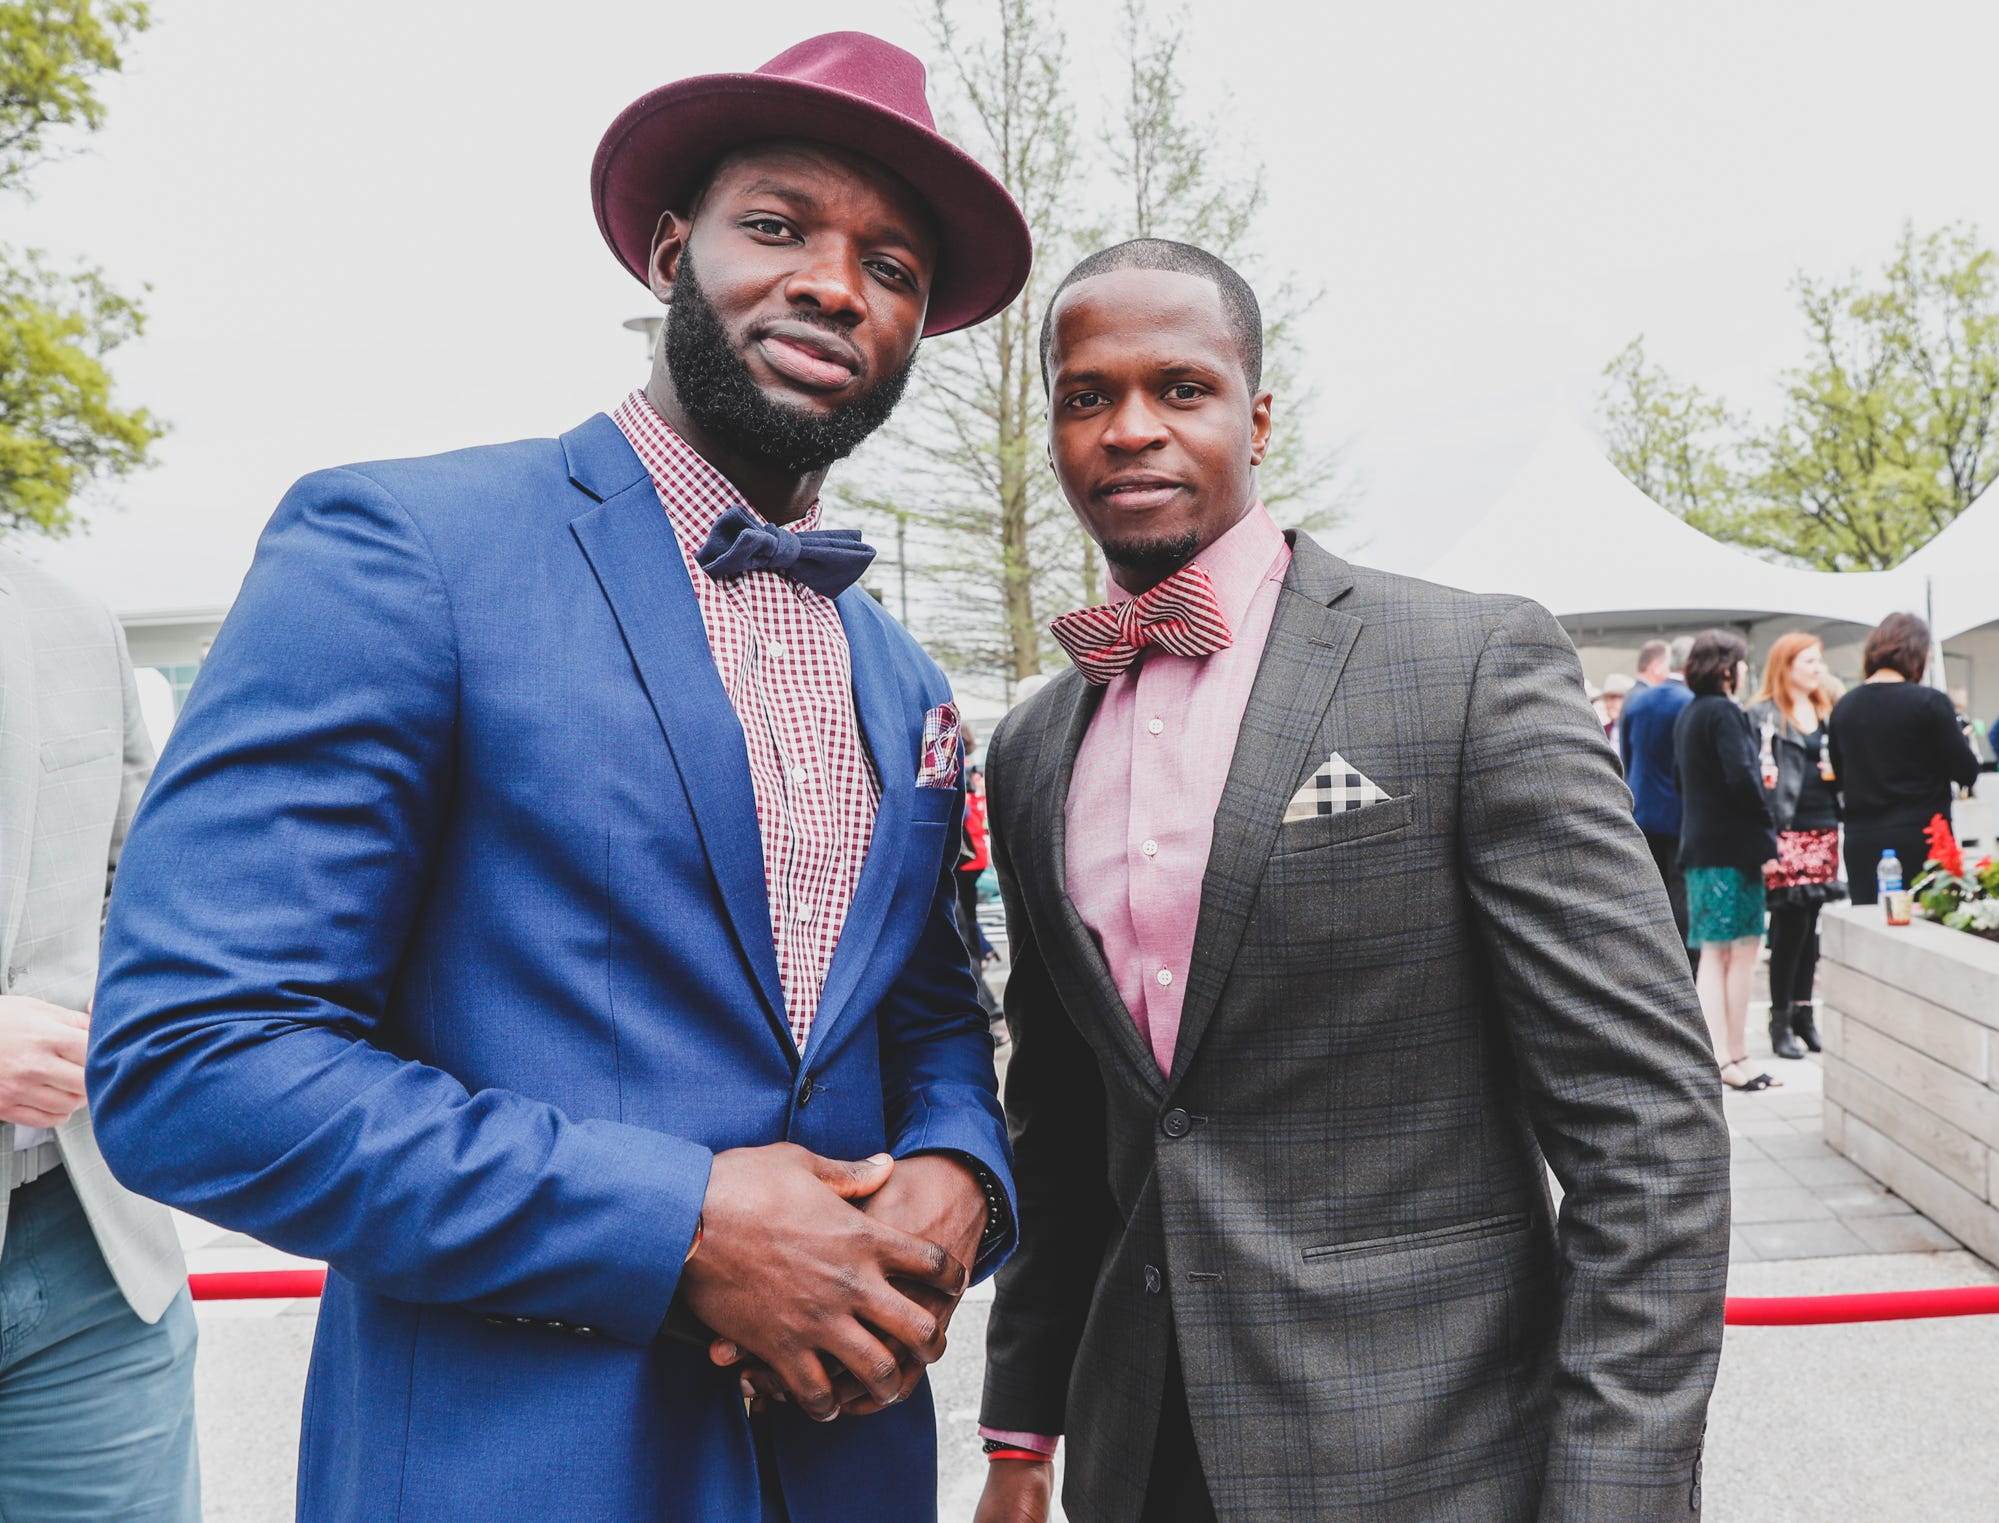 Guests Bapa Dieng, left, and Racine Gueye dress to impress at the Rev Indy fundraiser, held at the Indianapolis Motor Speedway on Saturday, May 4, 2019. Funds raised support the IU Health Foundation statewide and the IU Health Emergency Medical Center at IMS.